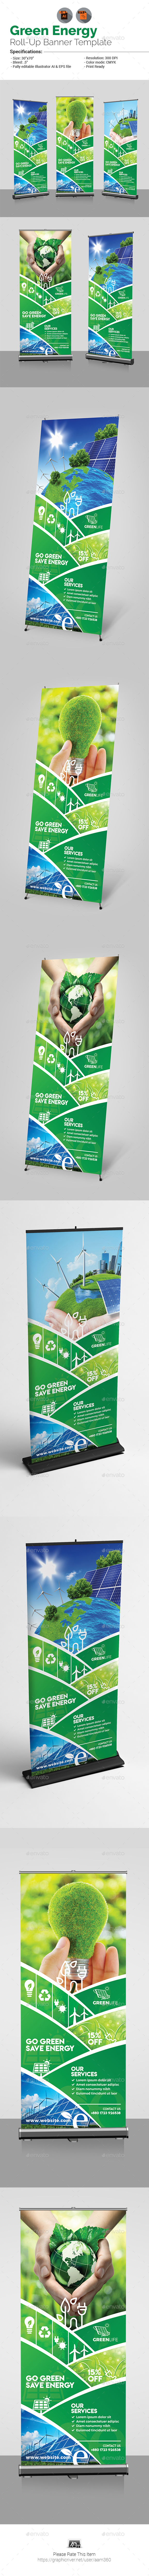 GraphicRiver Green Energy Roll-Up Banner 20869513